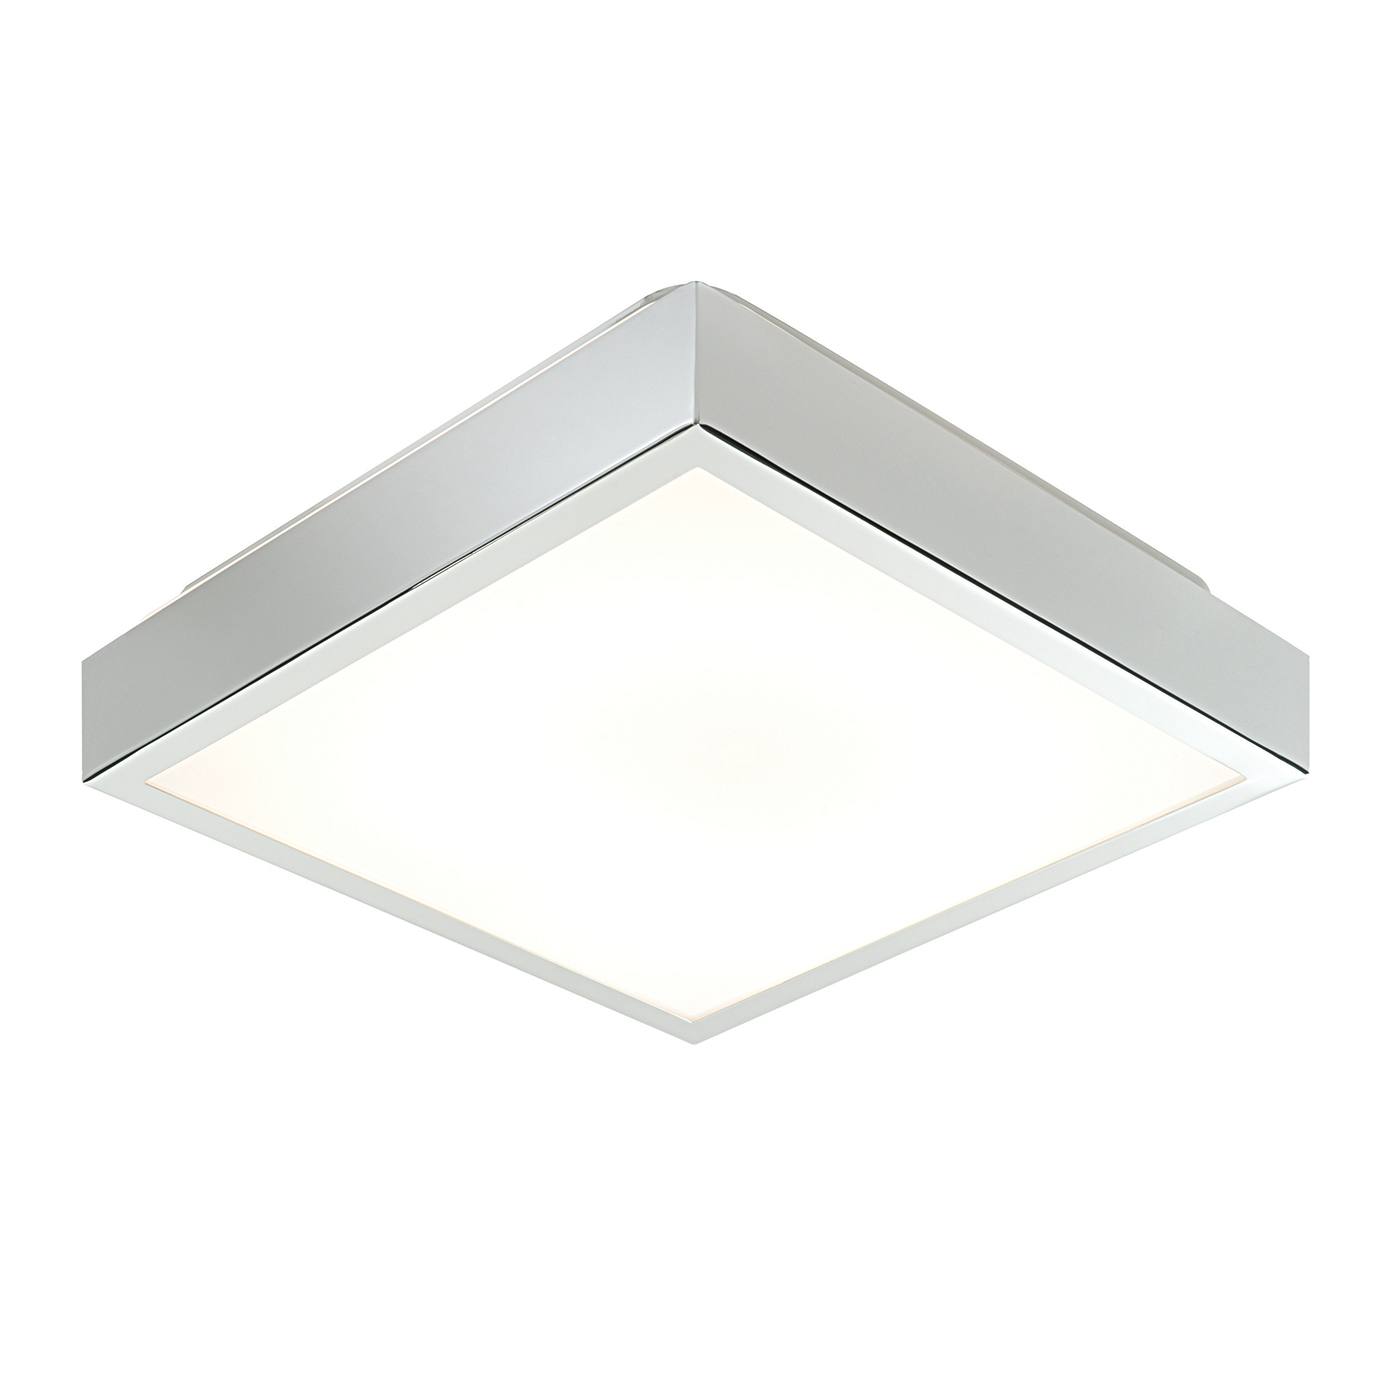 Endon Cubita 290mm Square Bathroom Ceiling Light Hf Ip44 28w Chrome Acrylic Liminaires